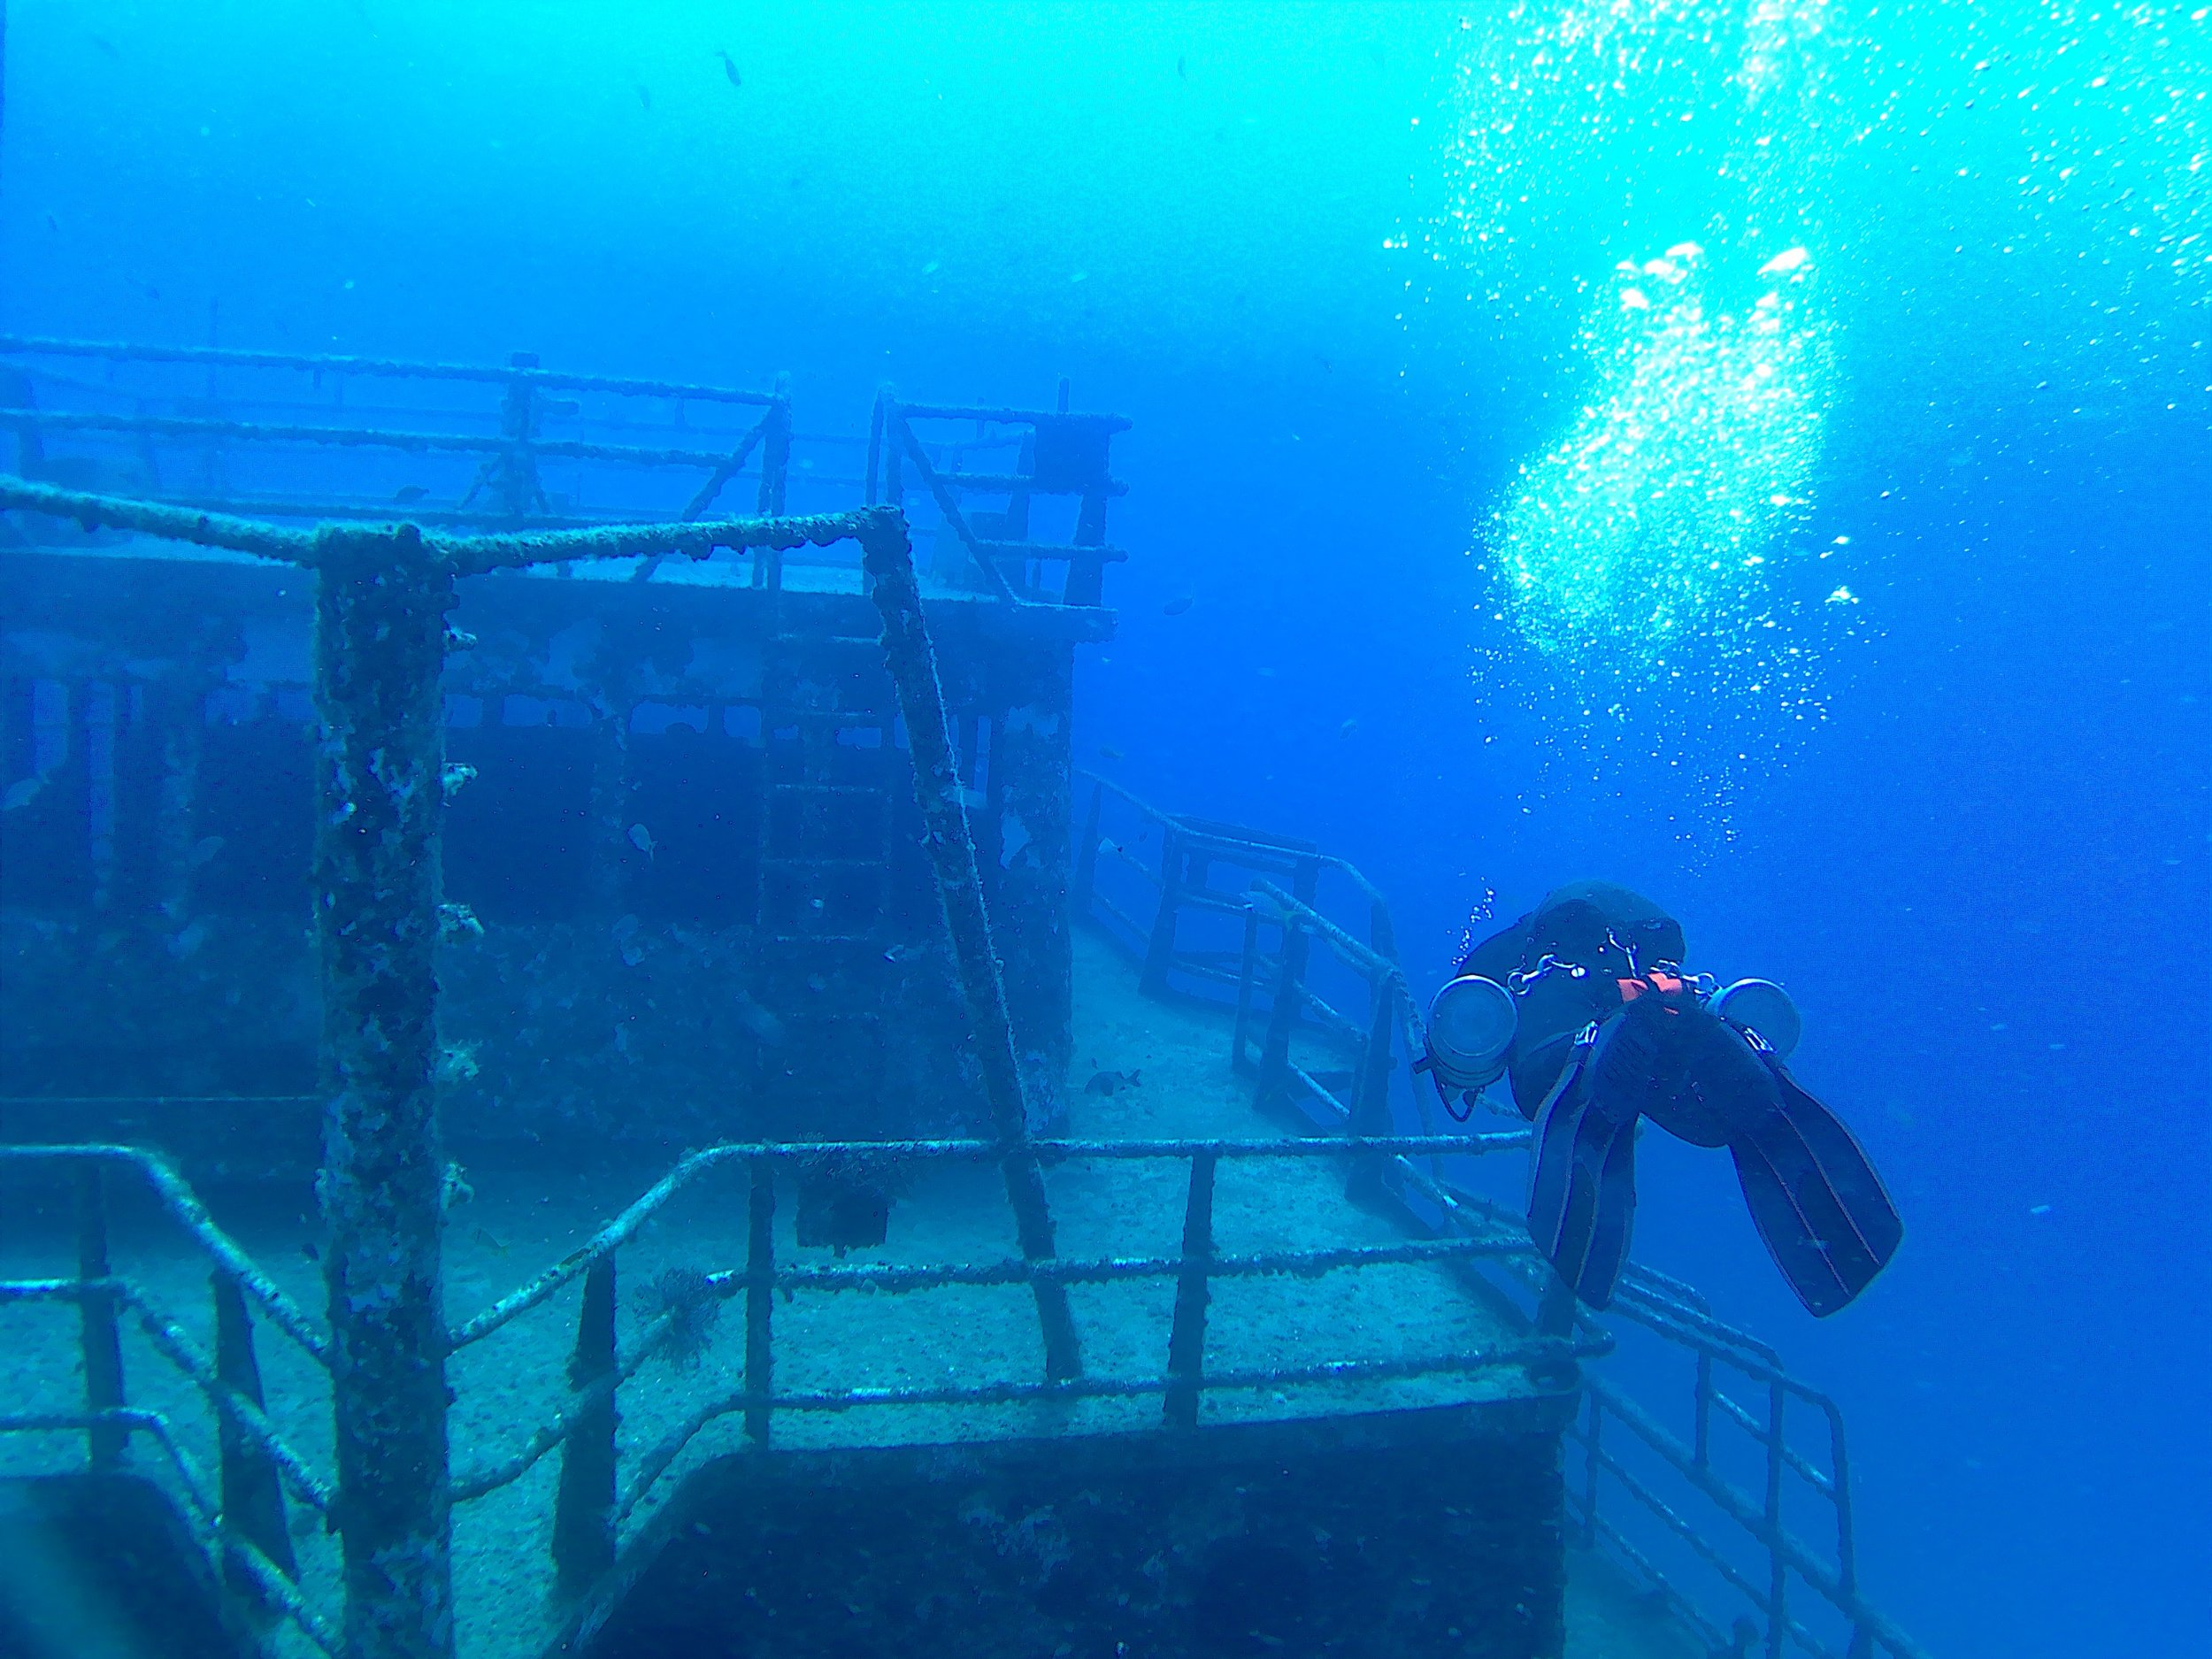 Wreck Diver - $339 with gear rental Call for availability. (Dose not include entrance or charter fees)